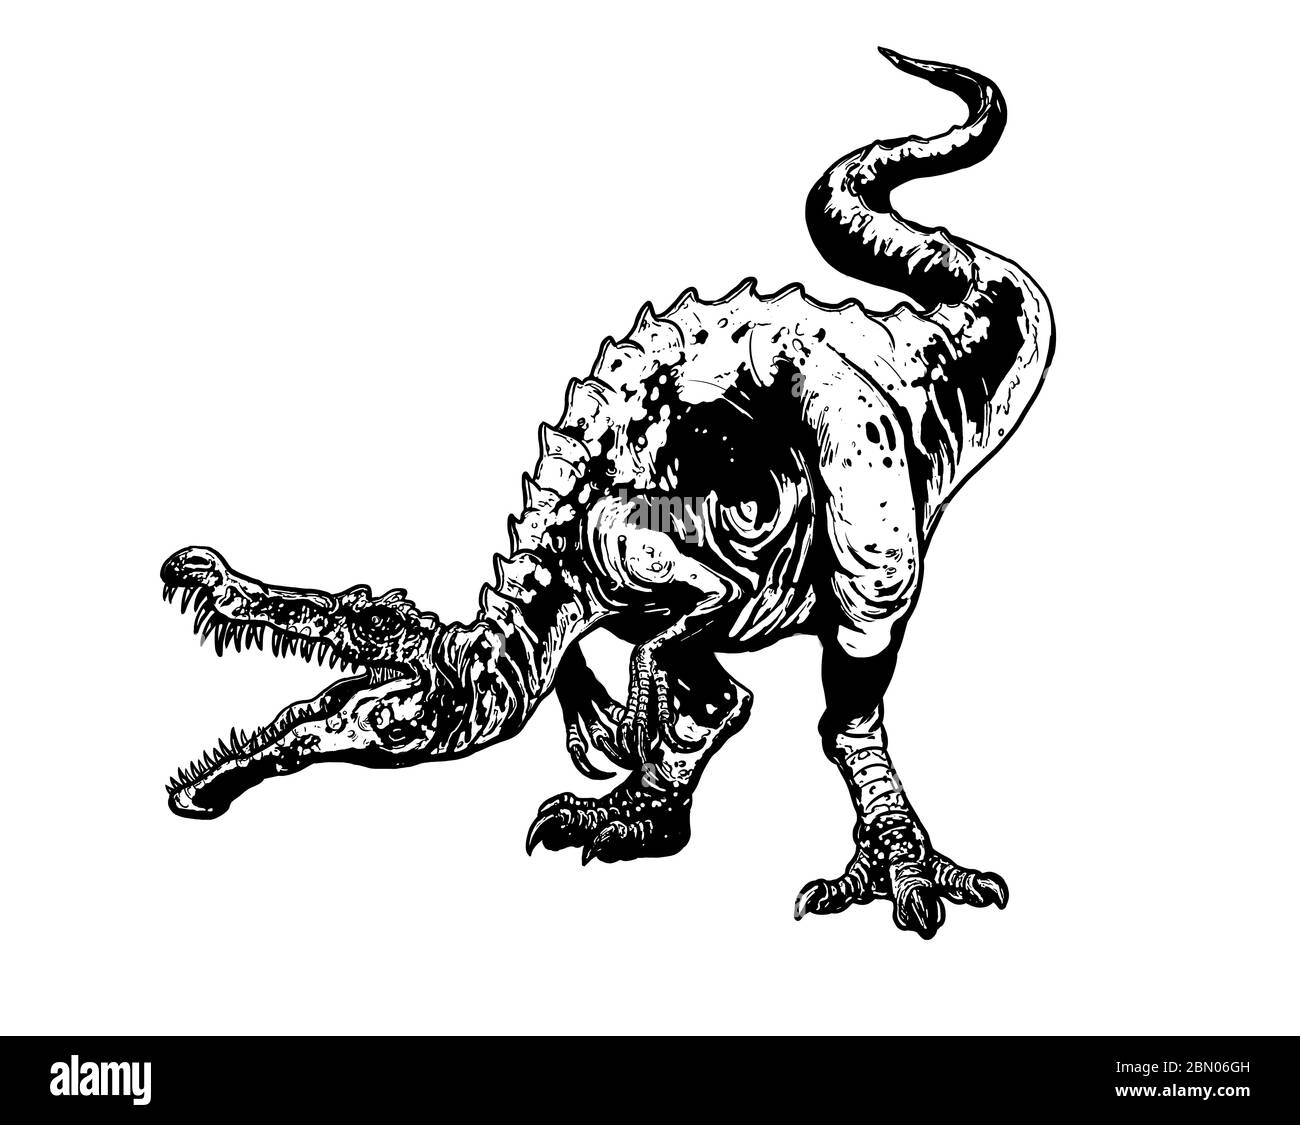 Carnivorous Dinosaur Baryonyx Dino Attack Isolated Drawing Coloring Page For Kids And Adults Stock Photo Alamy